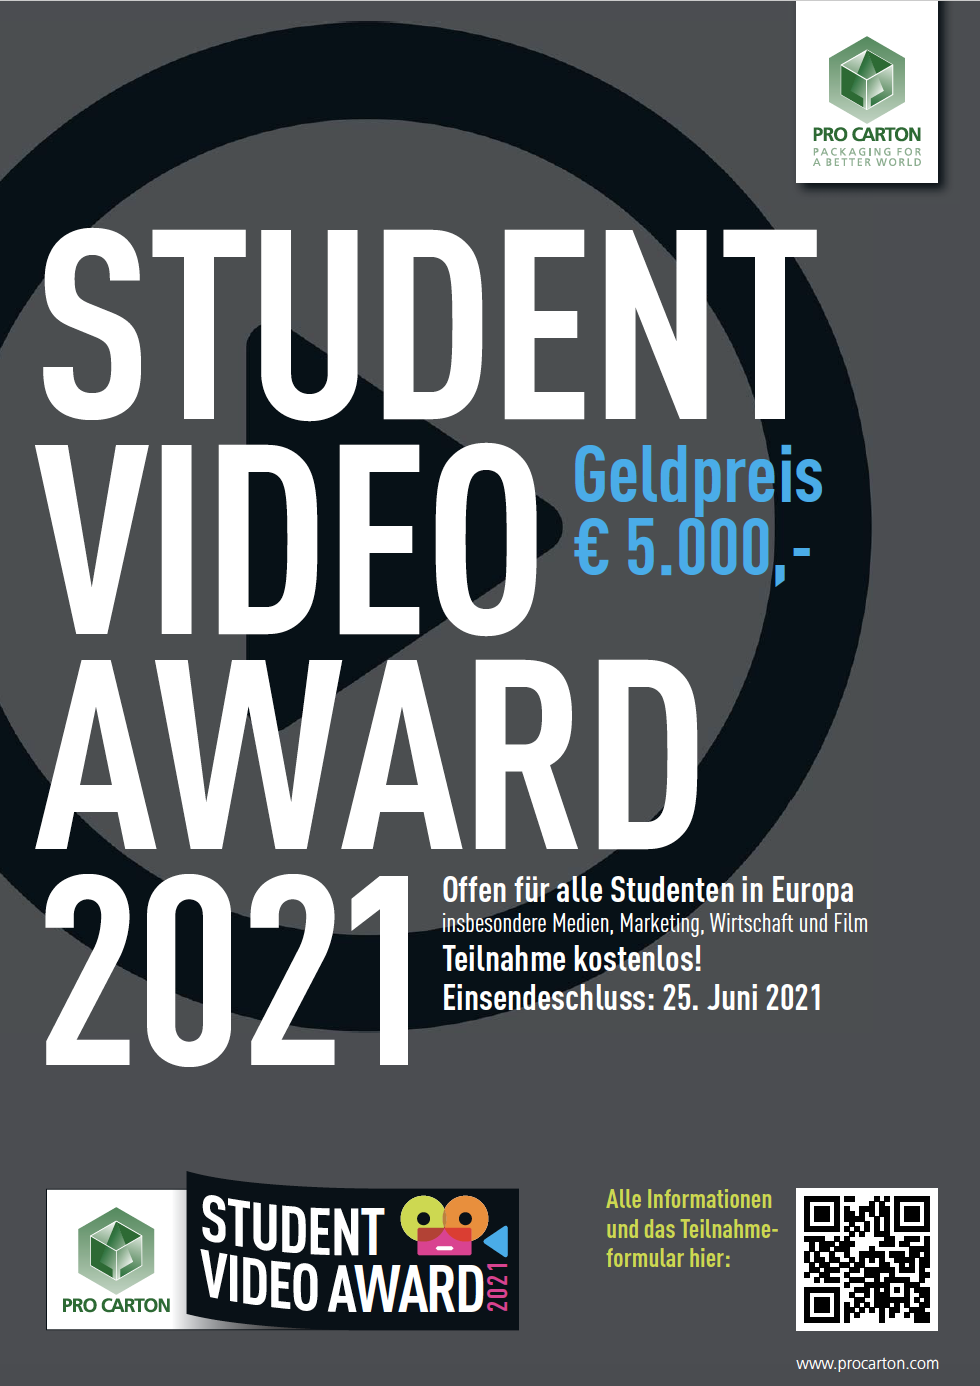 2021 Pro Carton Student Video Award